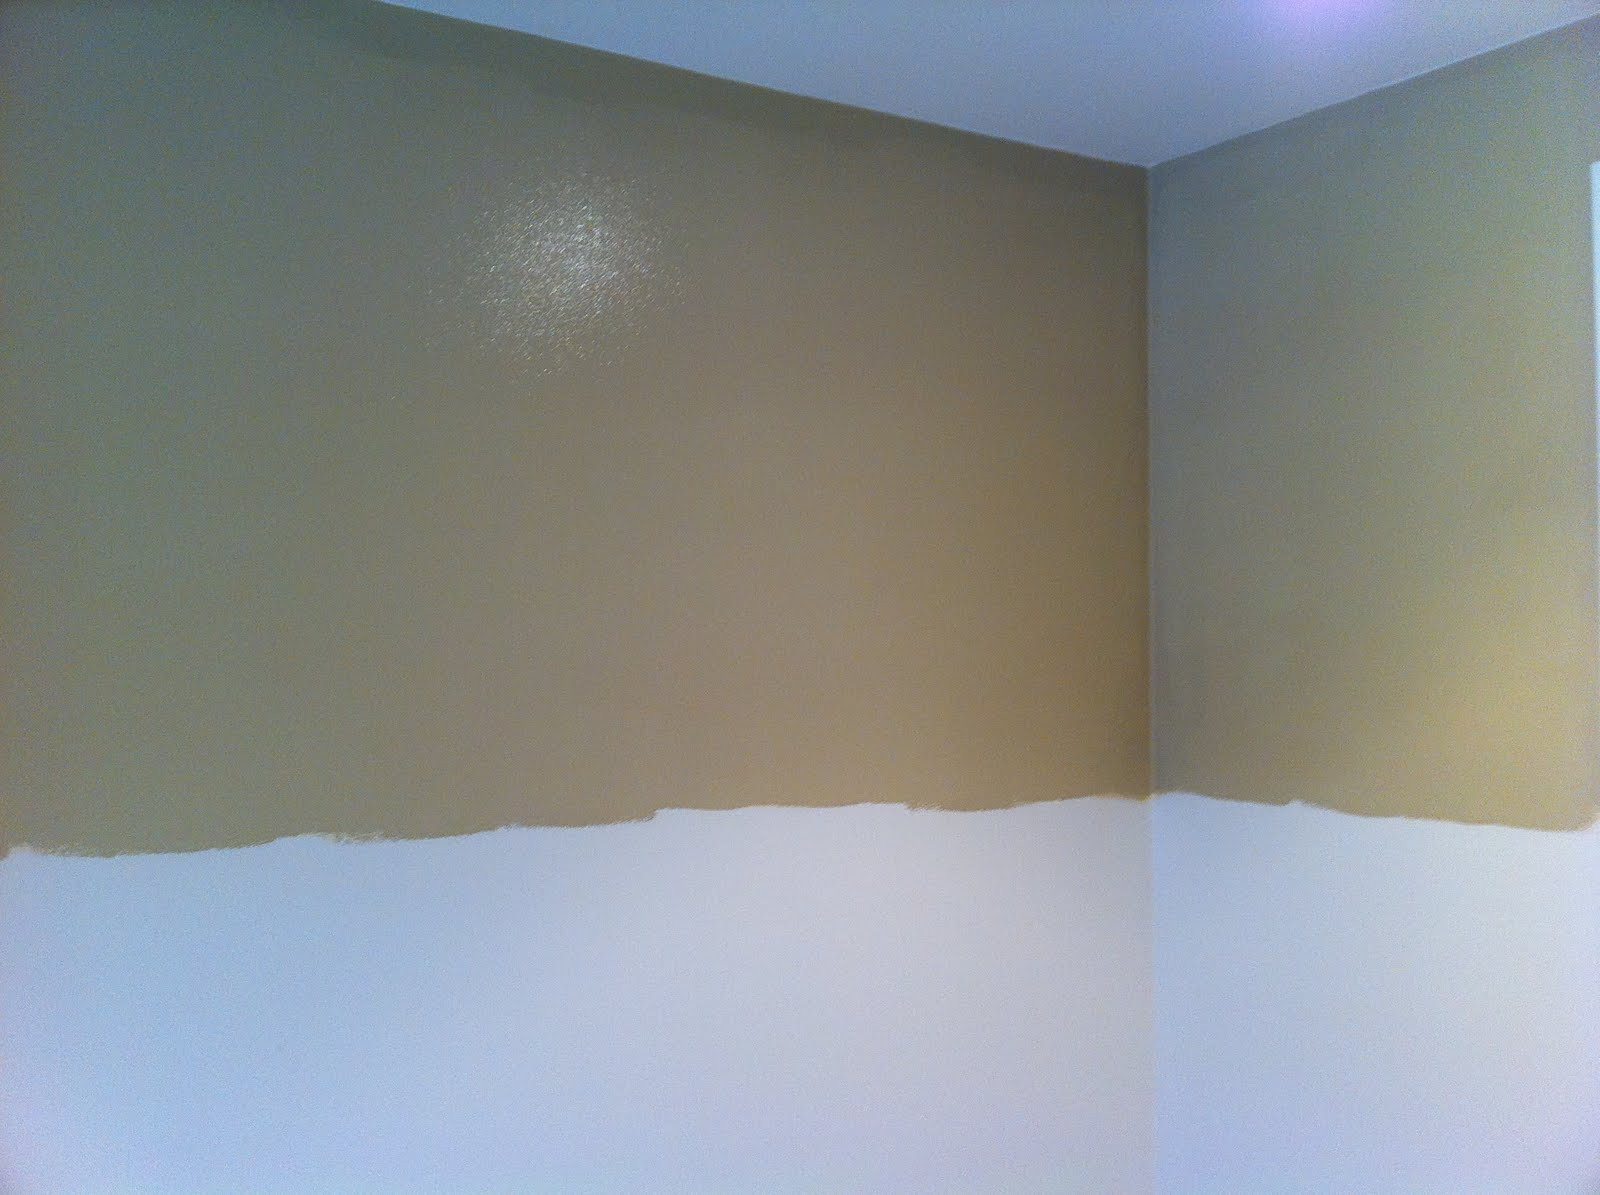 Behr Gobi Tan http://thenestinglife.blogspot.com/2011/07/board-and-batten.html